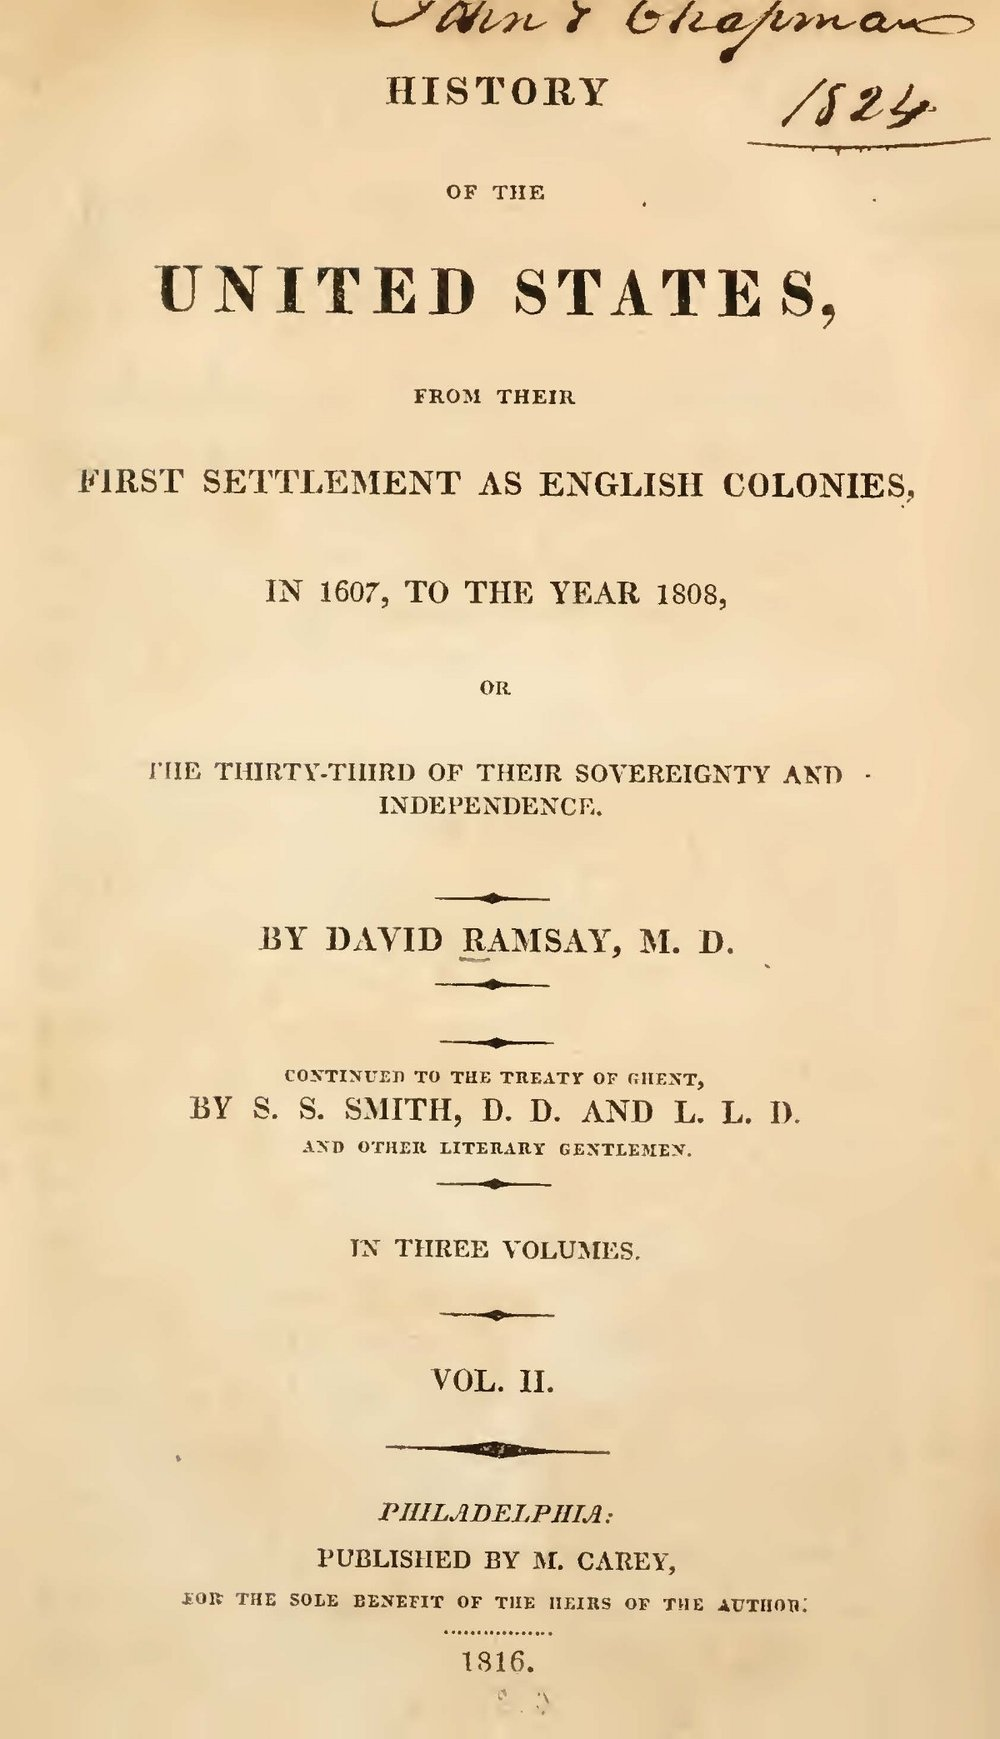 Ramsay, David, History of the United States, Vol. 2 Title Page.jpg